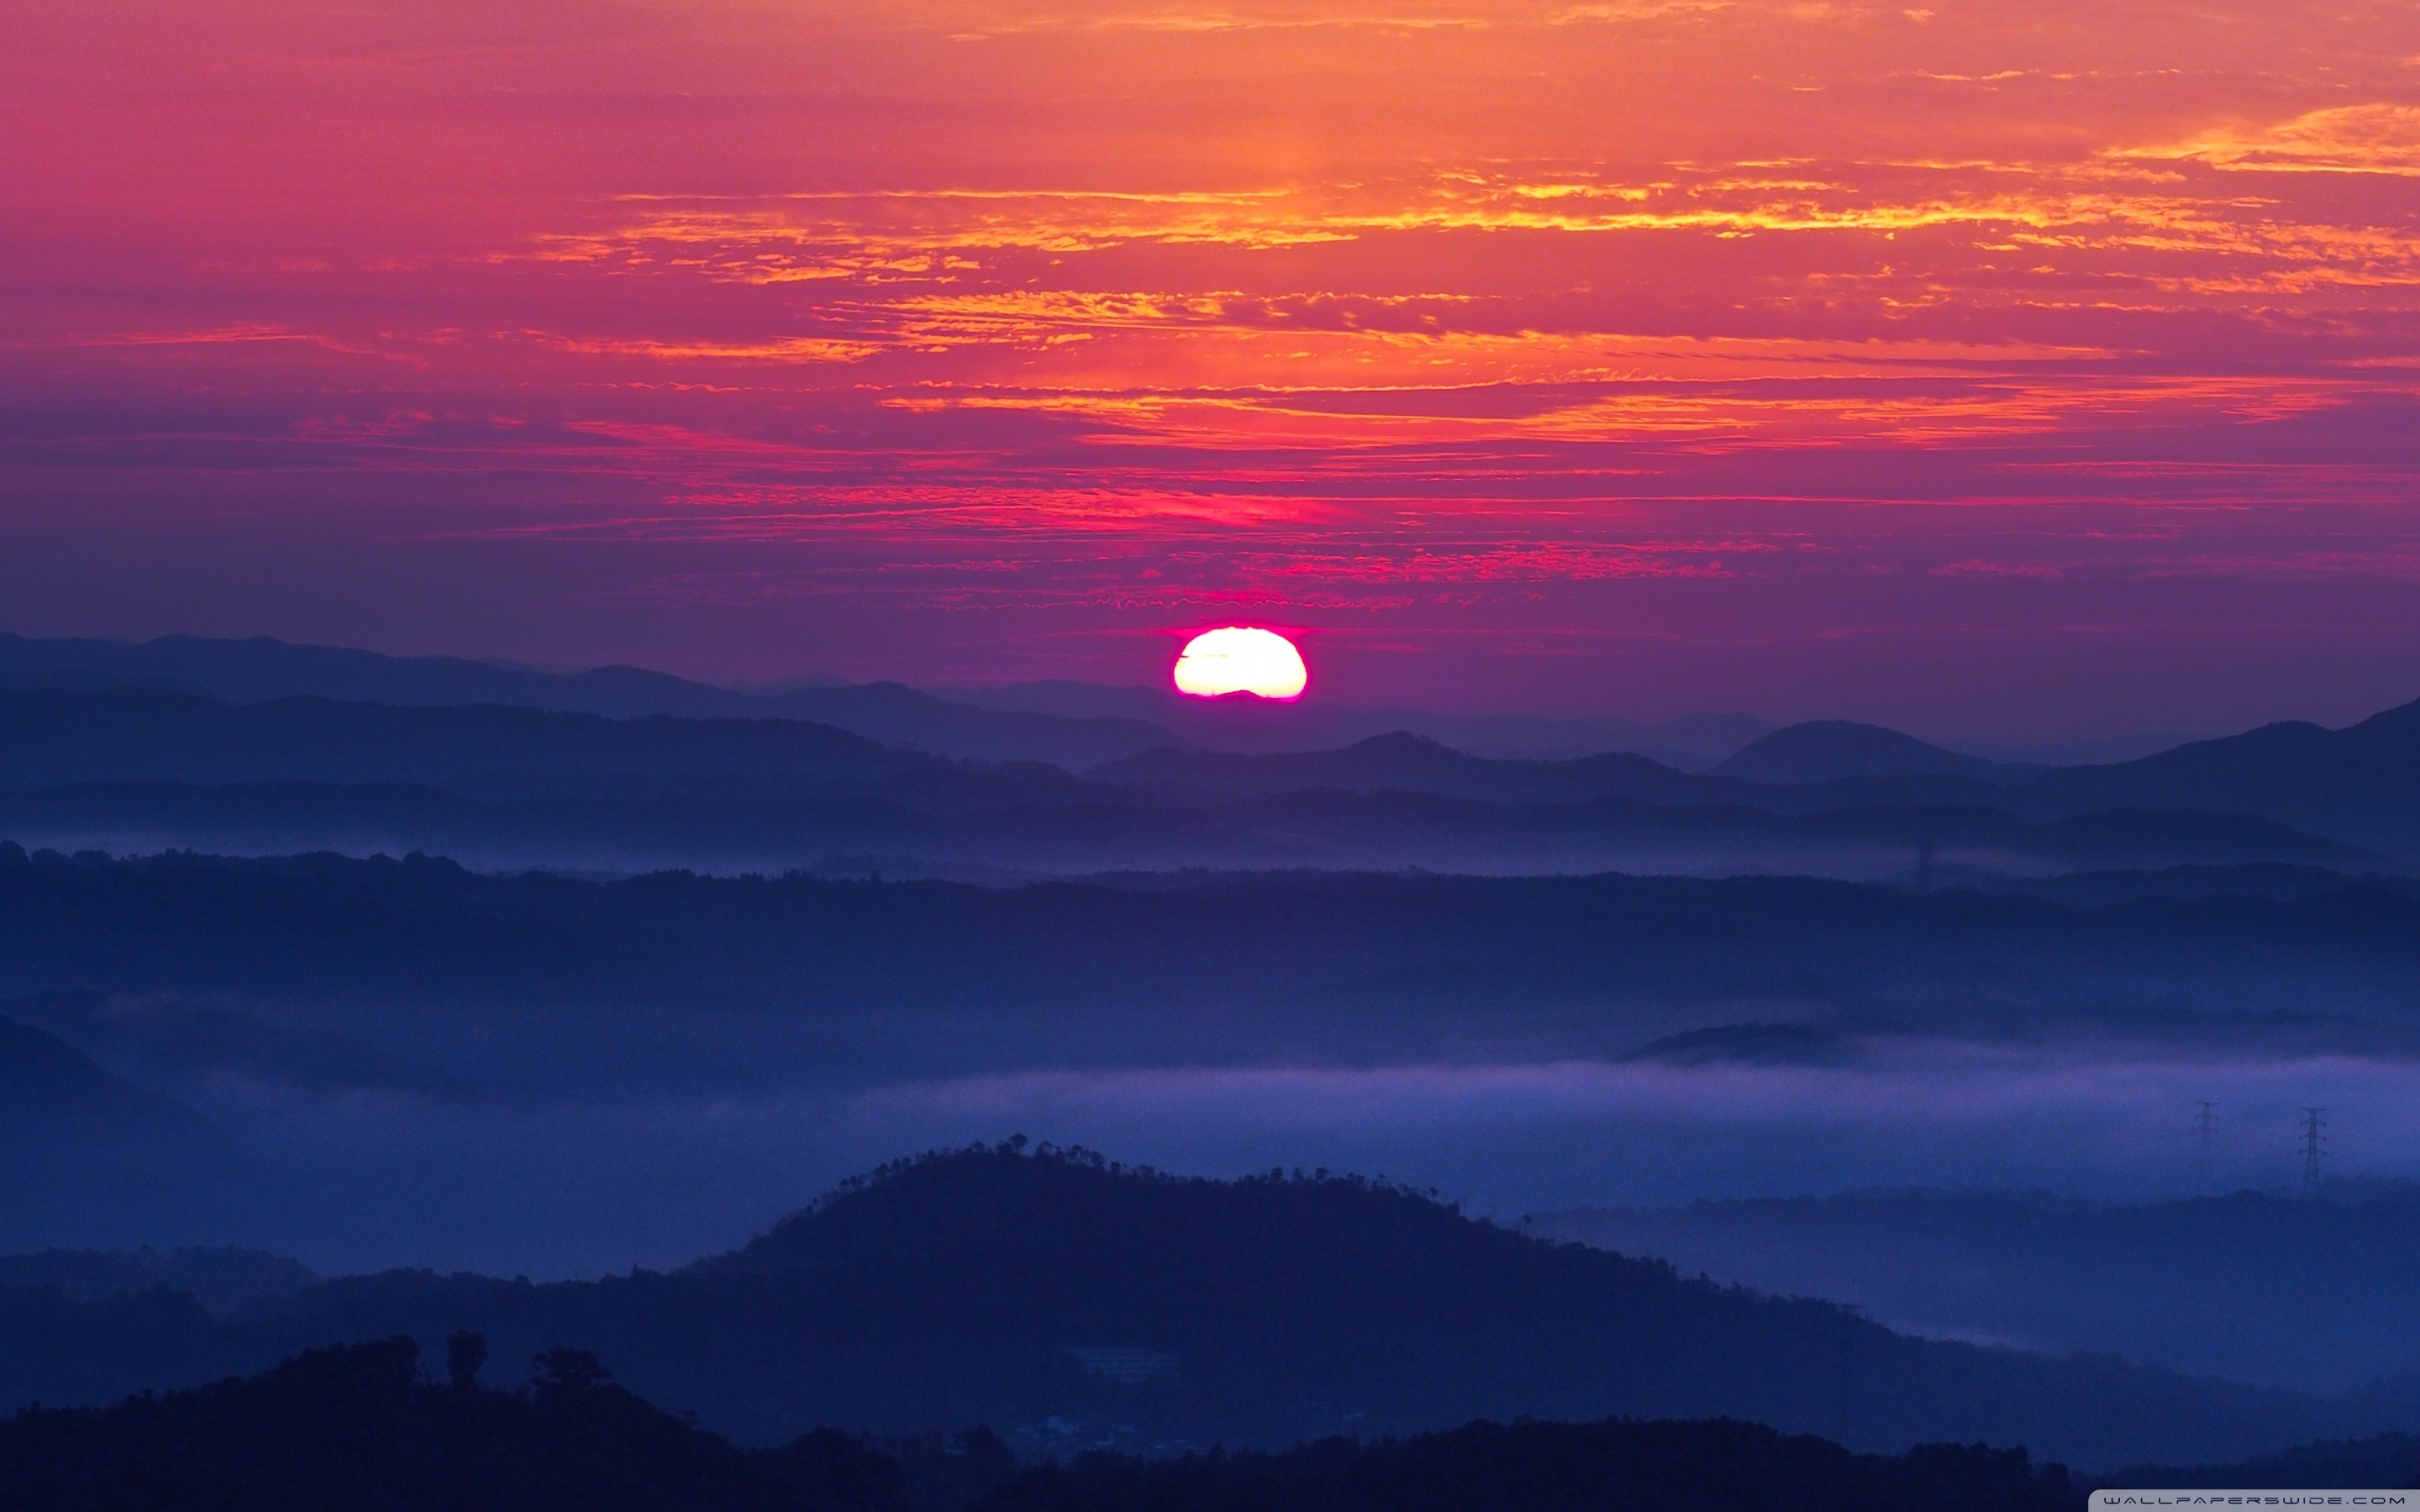 Download Mountain Sunset Wallpaper Gallery